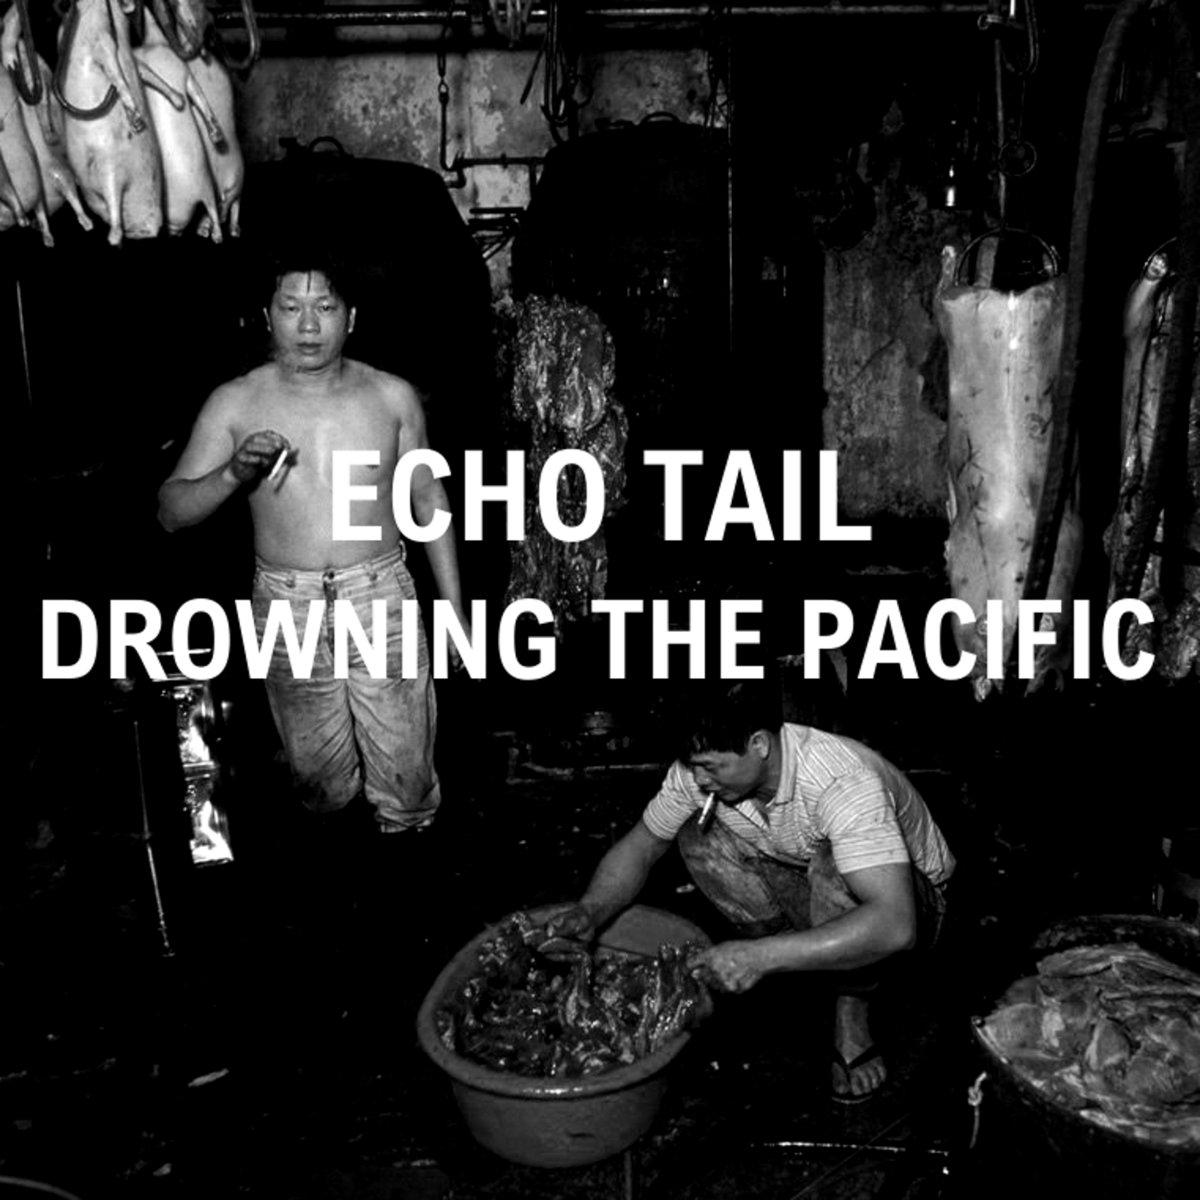 https://echotail.bandcamp.com/album/drowning-the-pacific